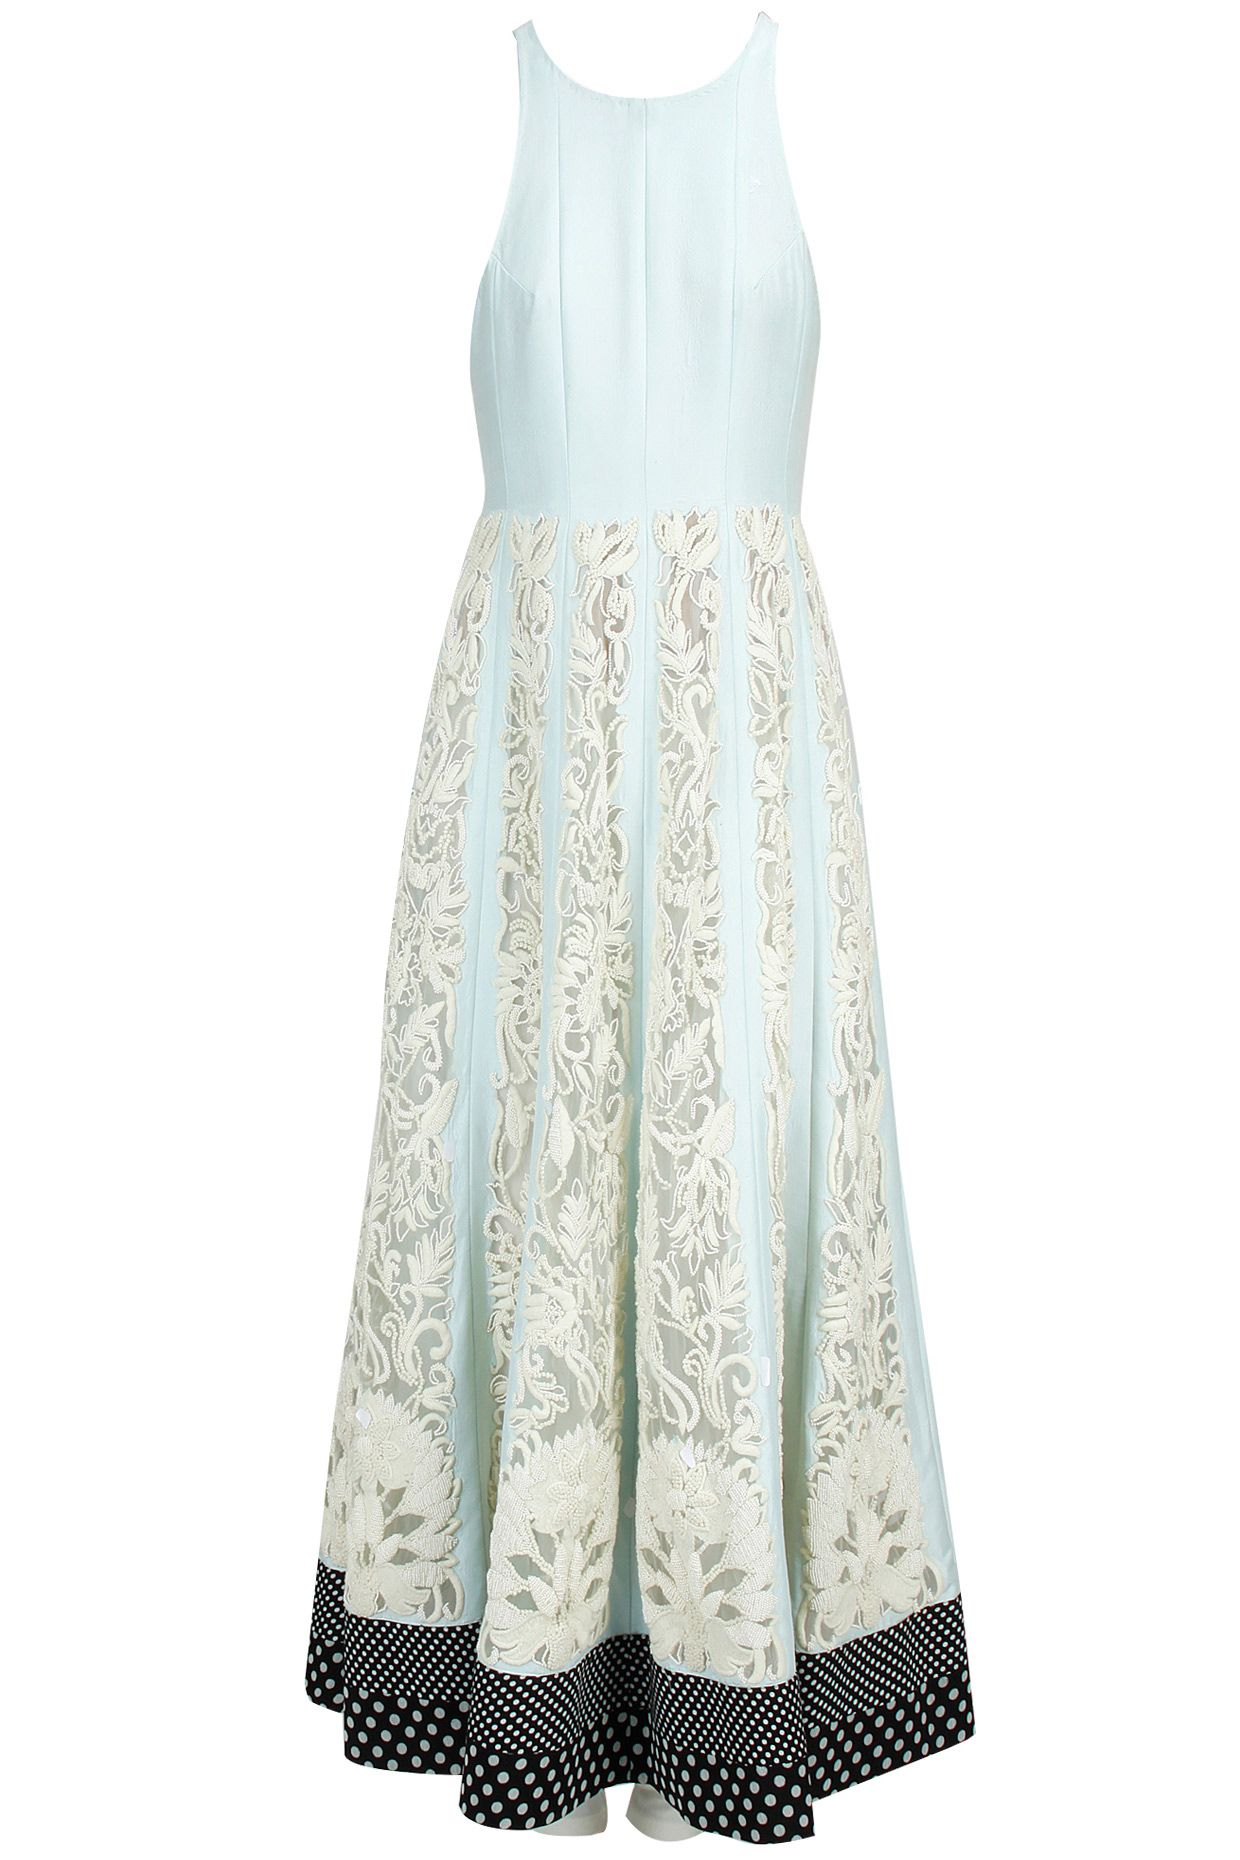 Pale blue embroidered anarkali set with boondi duppata available only at Pernia's Pop-Up Shop.